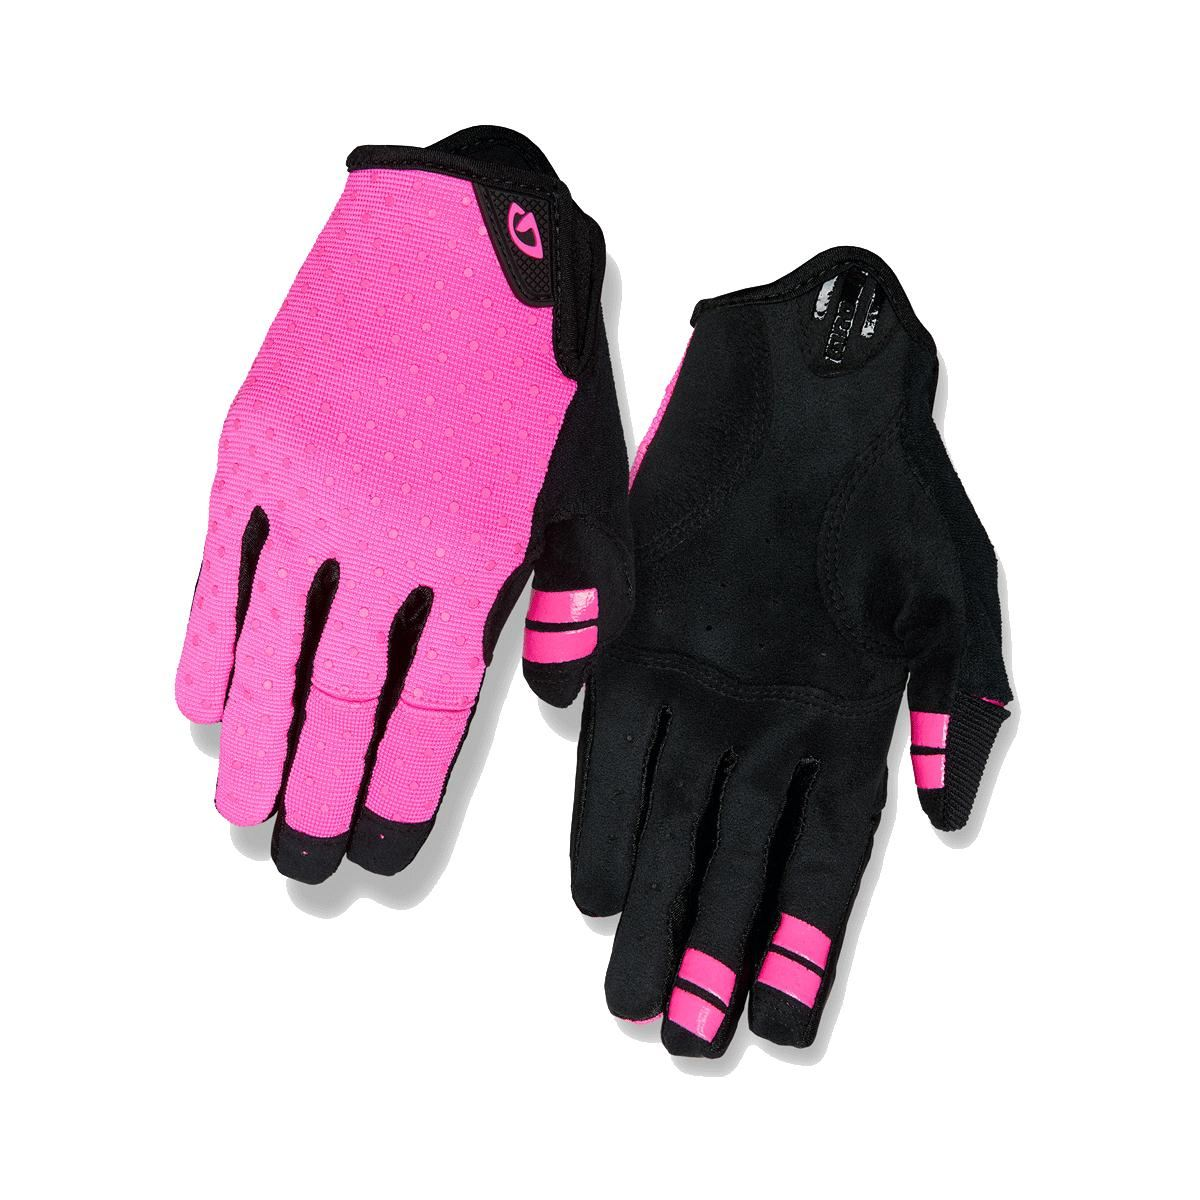 New Pair of GIRO DND Adult Full Finger Blue TEXAS Cycling Gloves Small